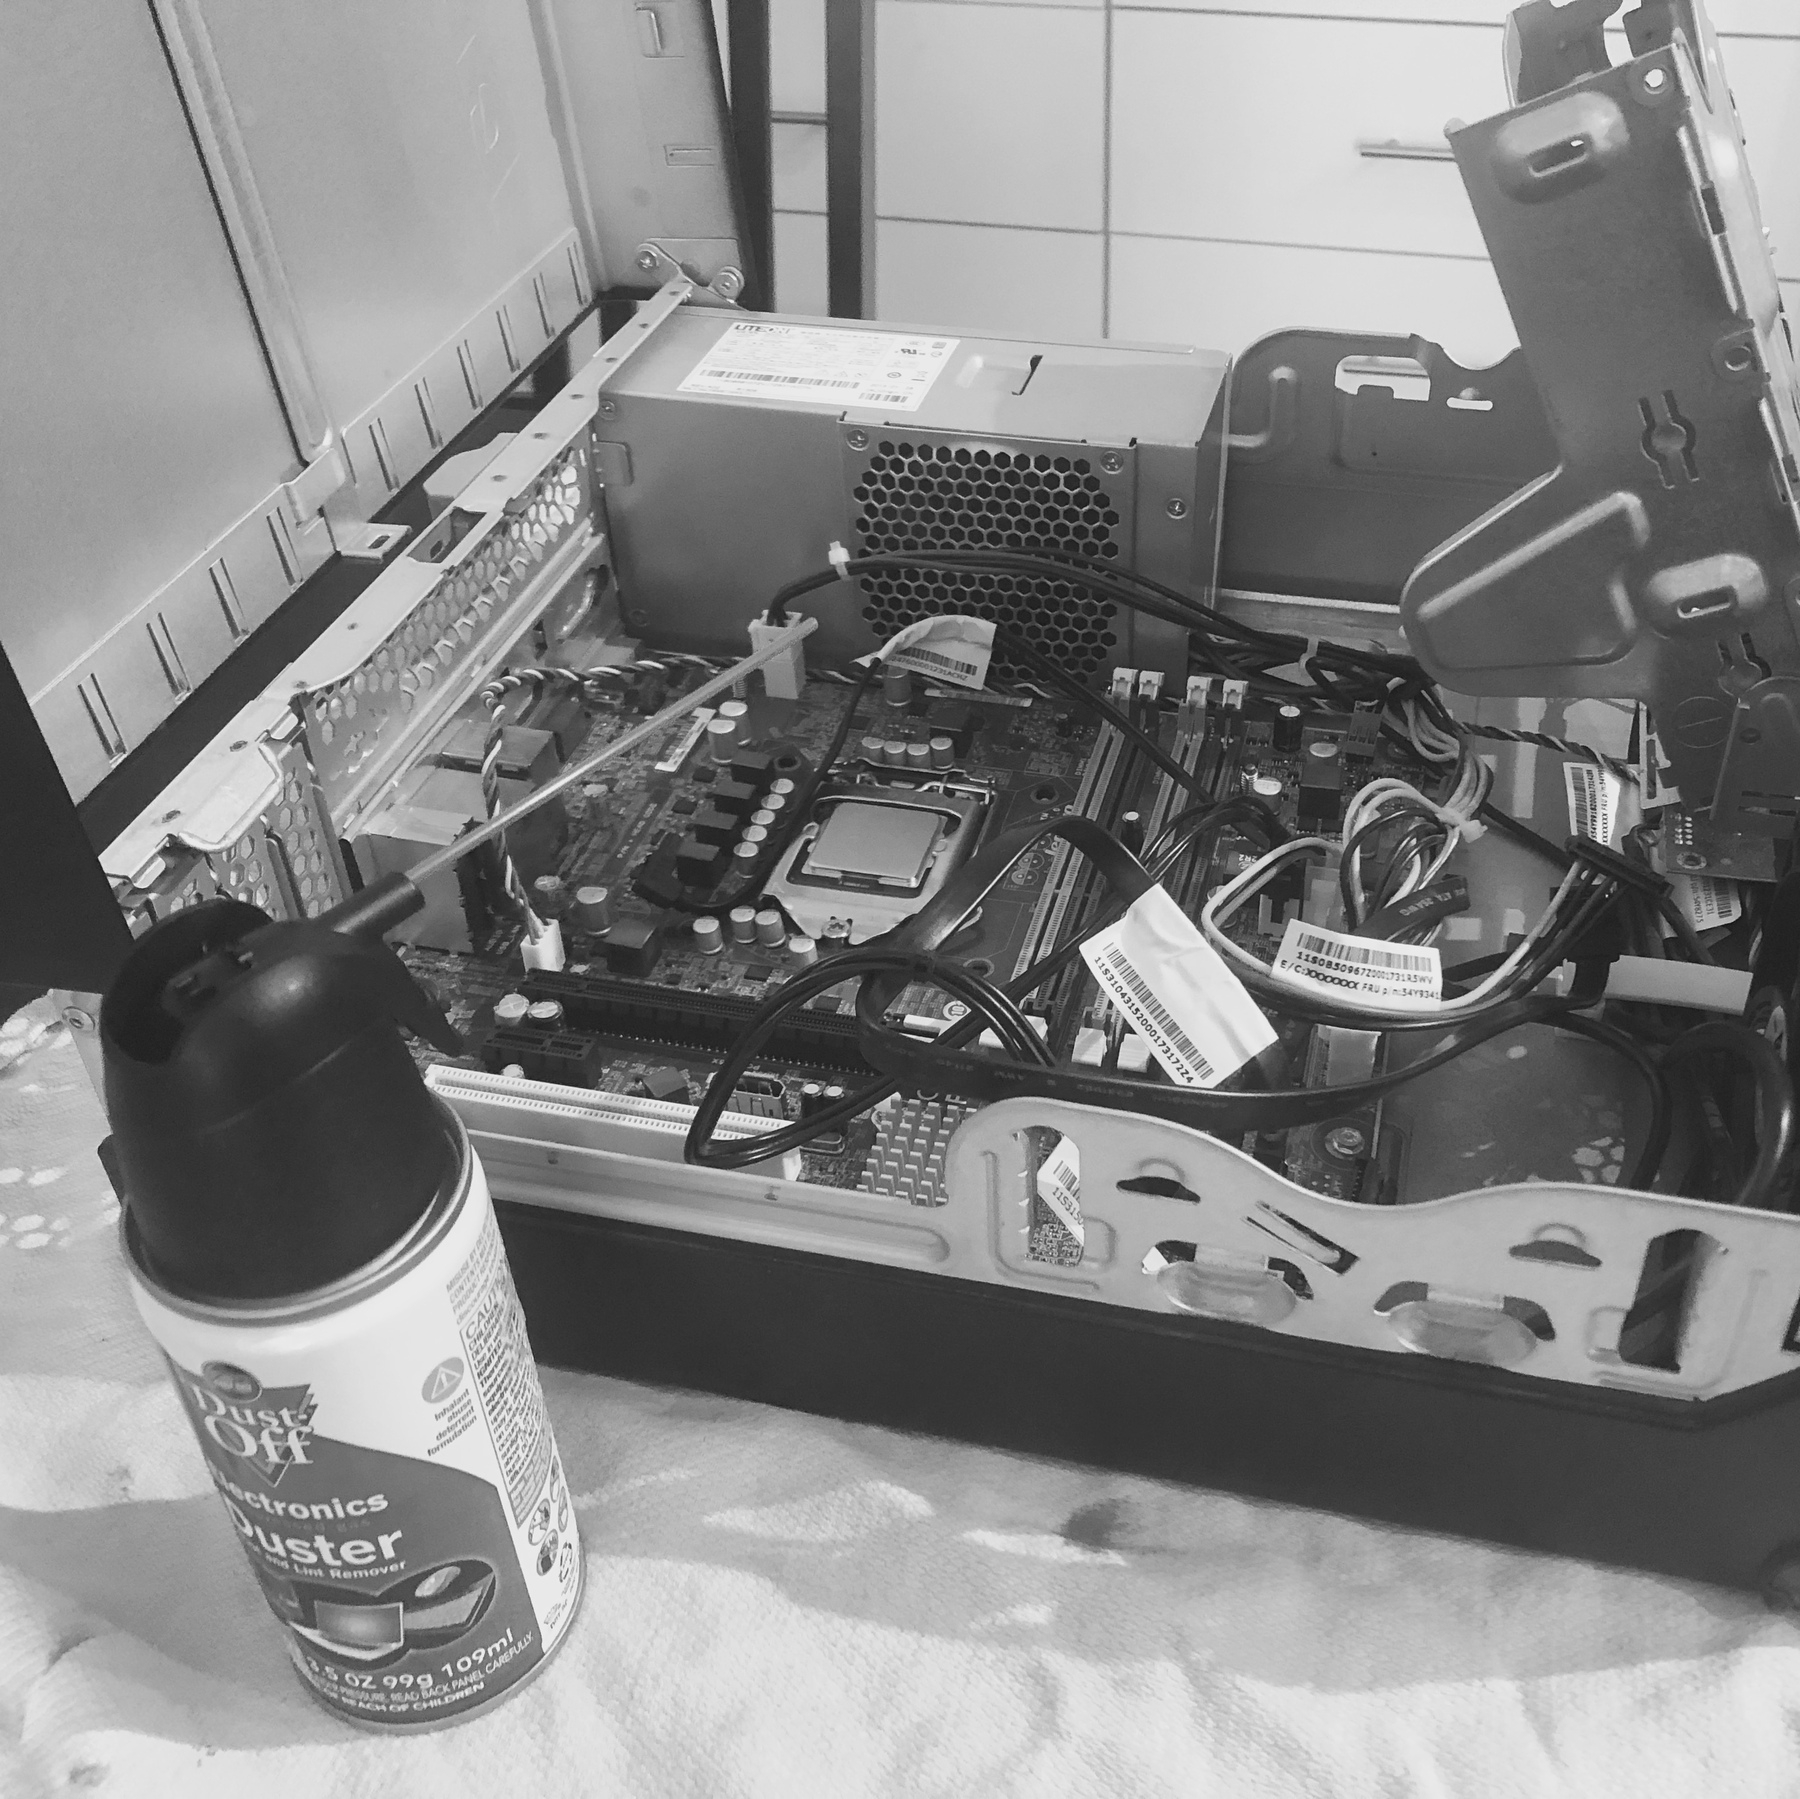 An open desktop PC and a can of compressed air.